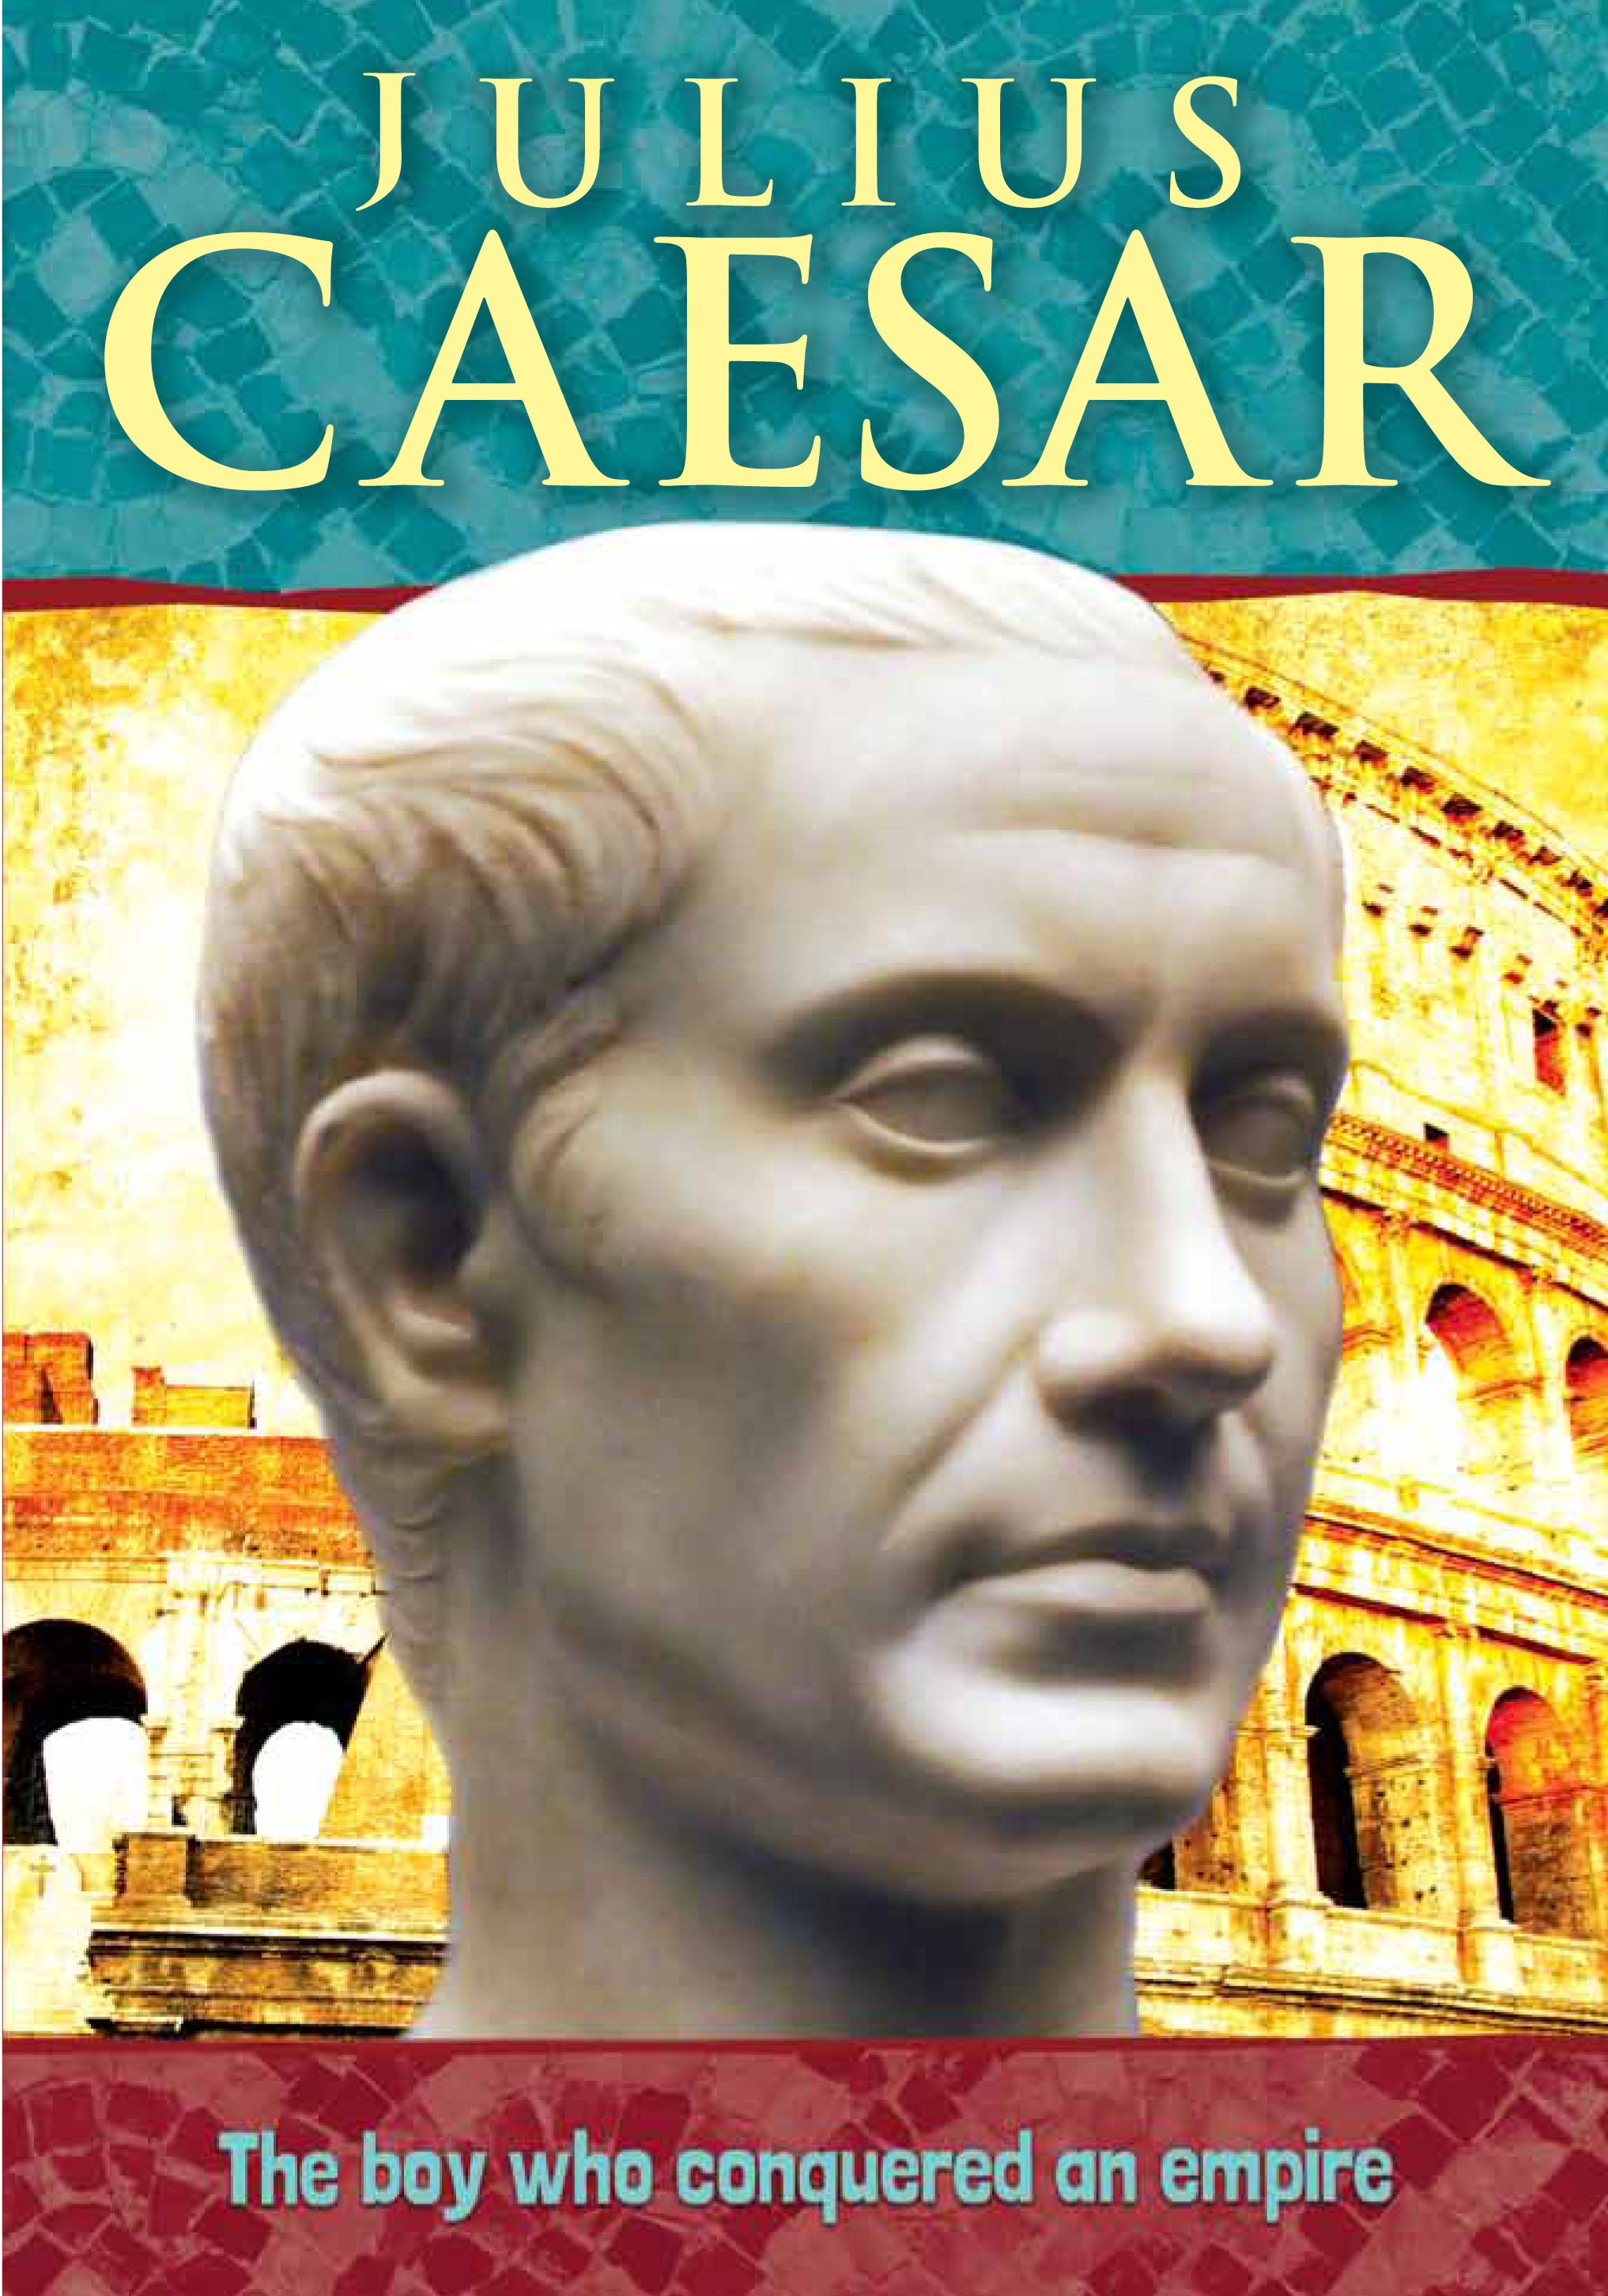 Biography Julius Caesar By Ellen Galford